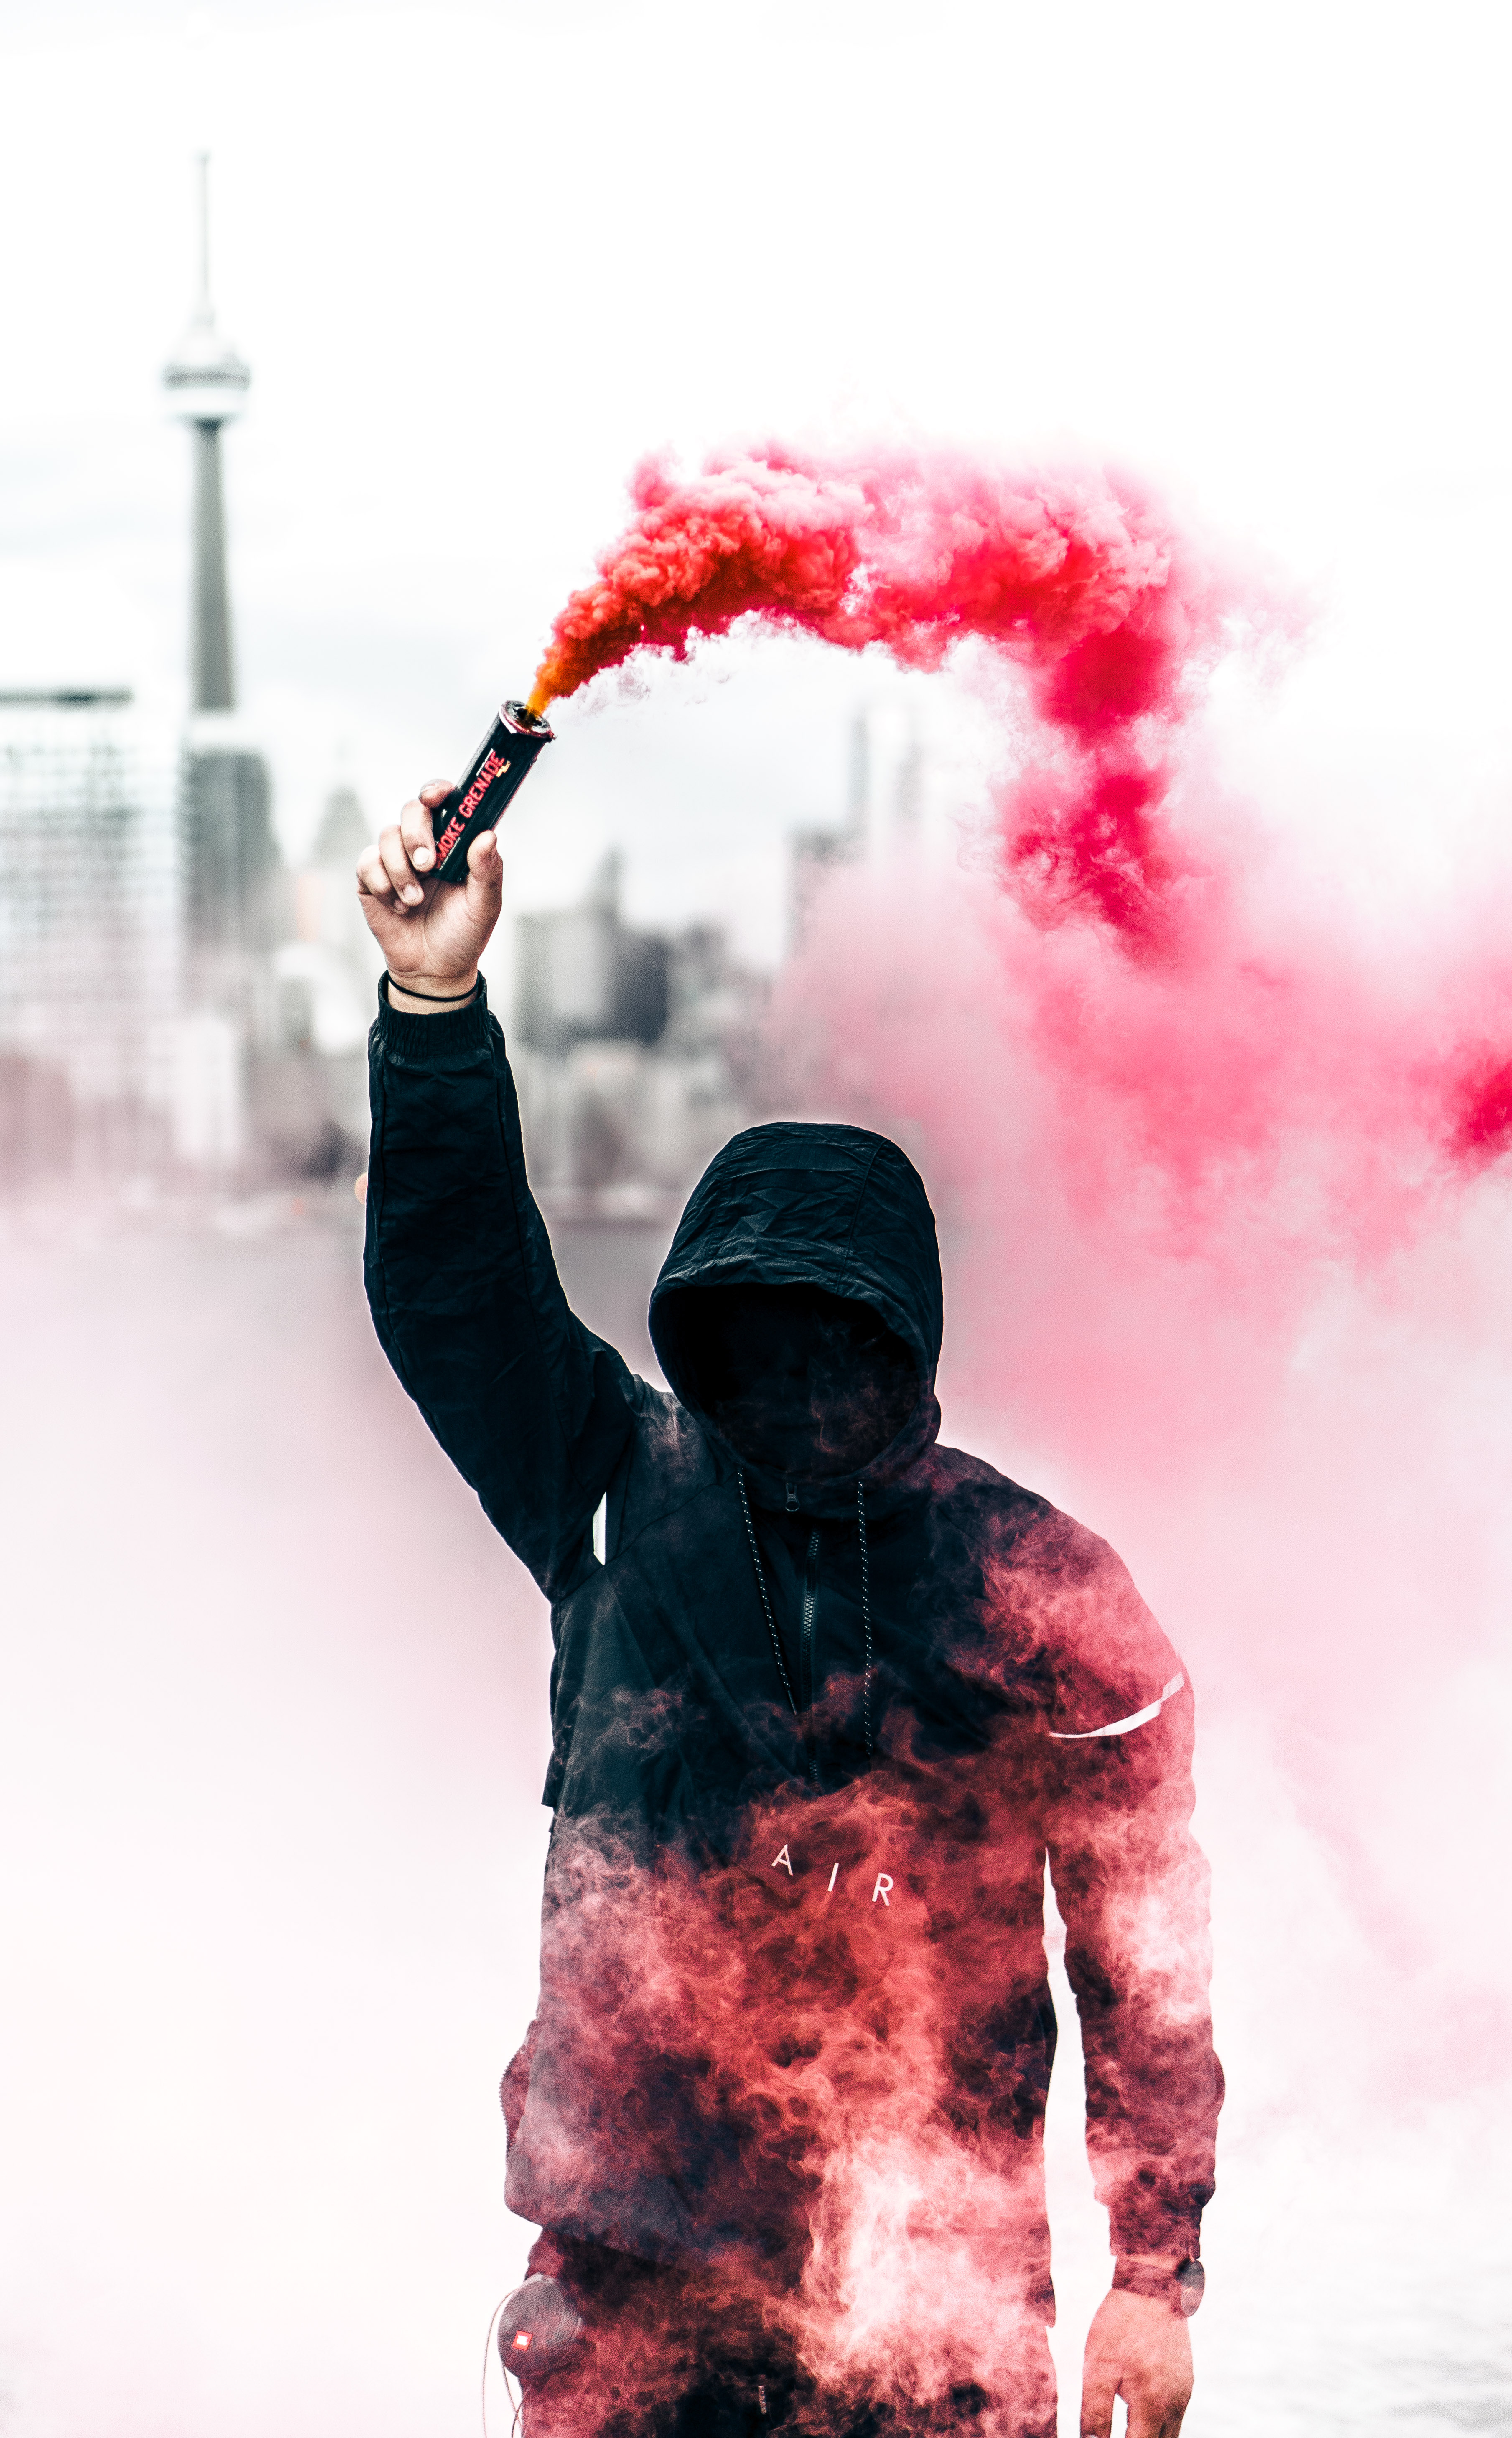 person with pink smoke grenade photo by warren wong